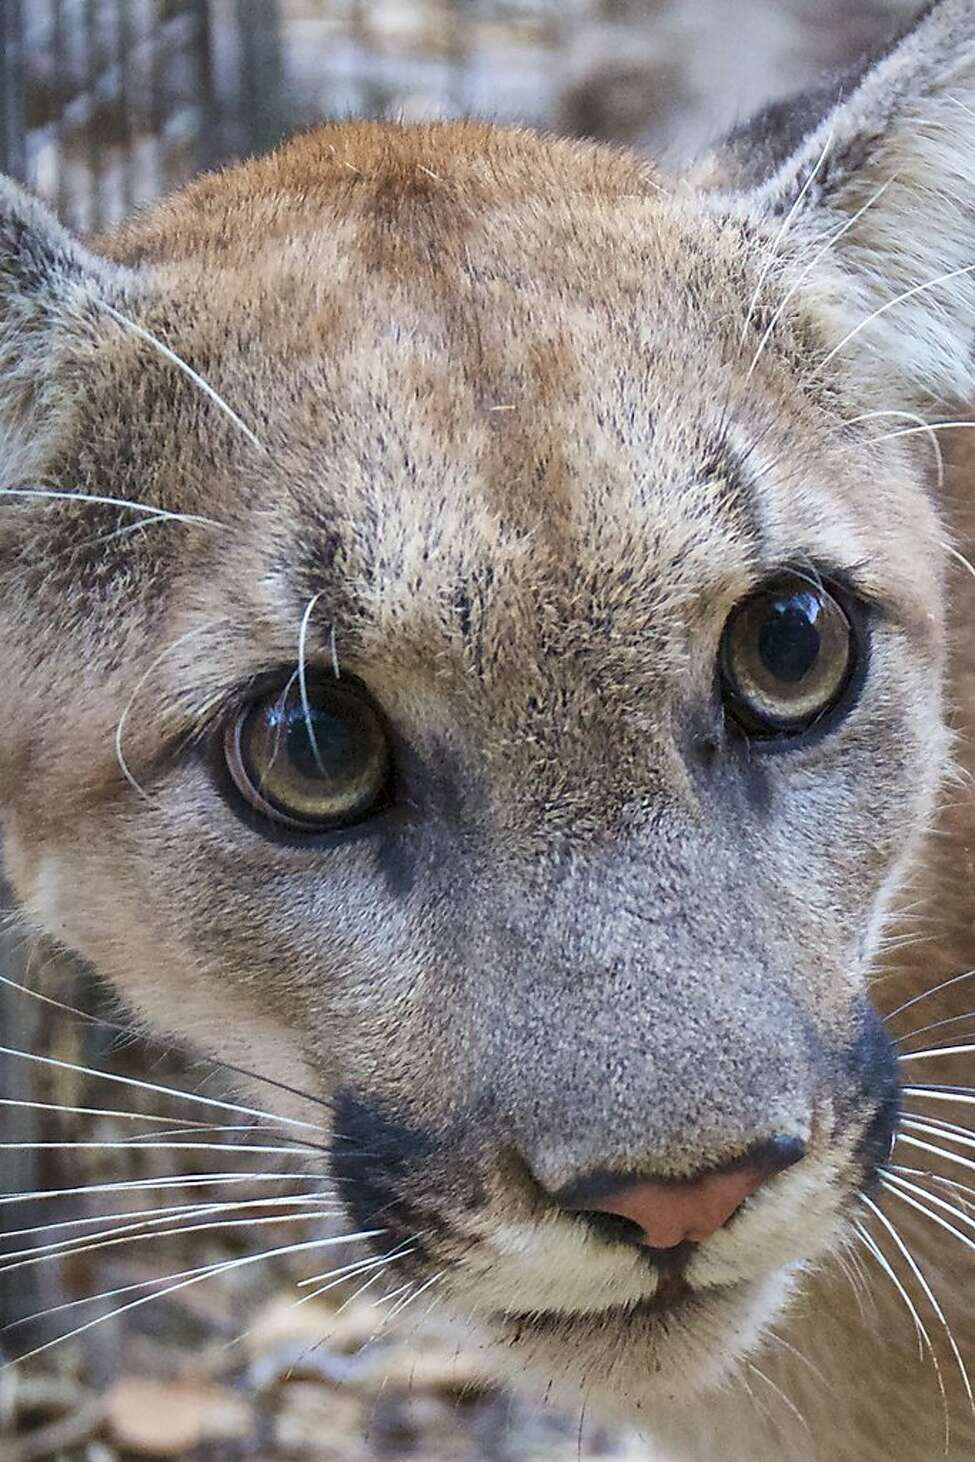 A photo provided by the National Park Service of P-74, the newest member of a group of mountain lions that park rangers in Southern California have tracked with GPS collars. (National Park Service via The New York Times)